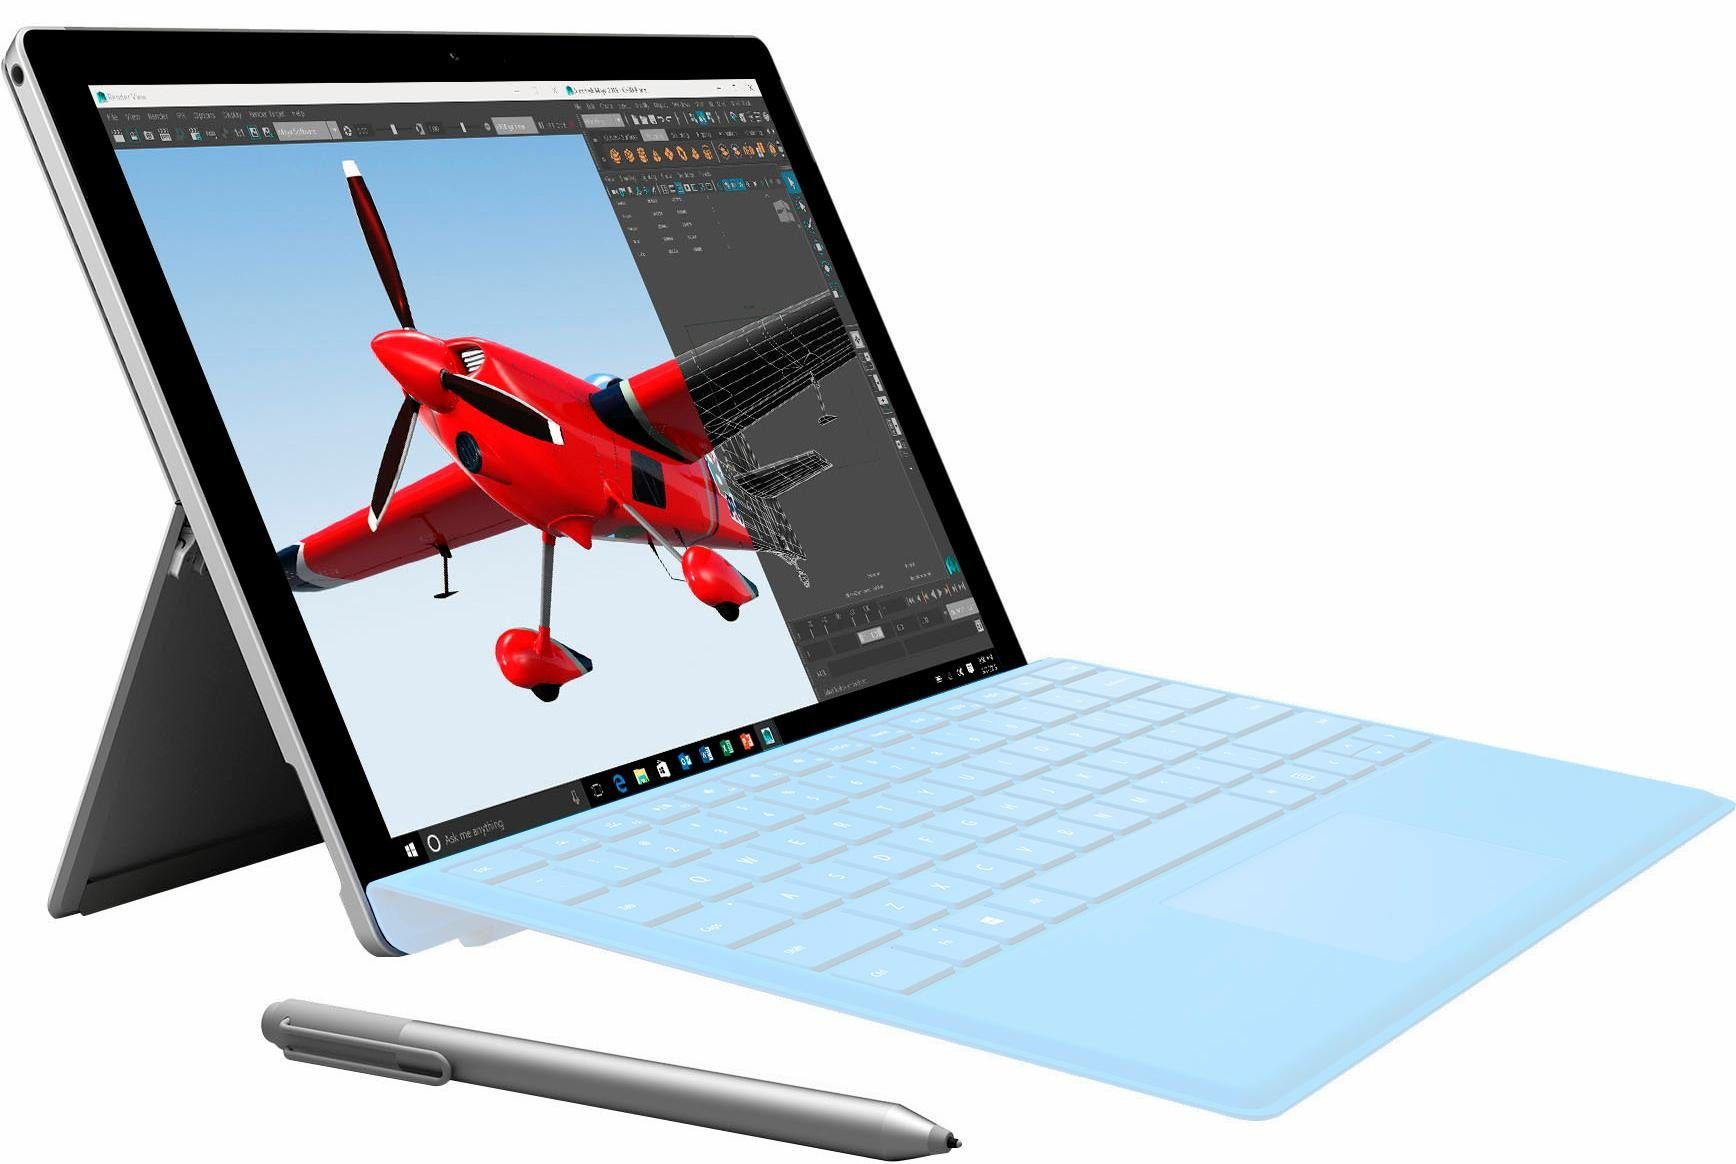 Microsoft Surface Pro 4 CQ9-00003 Tablet-PC, Microsoft® Windows® 10 Pro, Intel Core i7